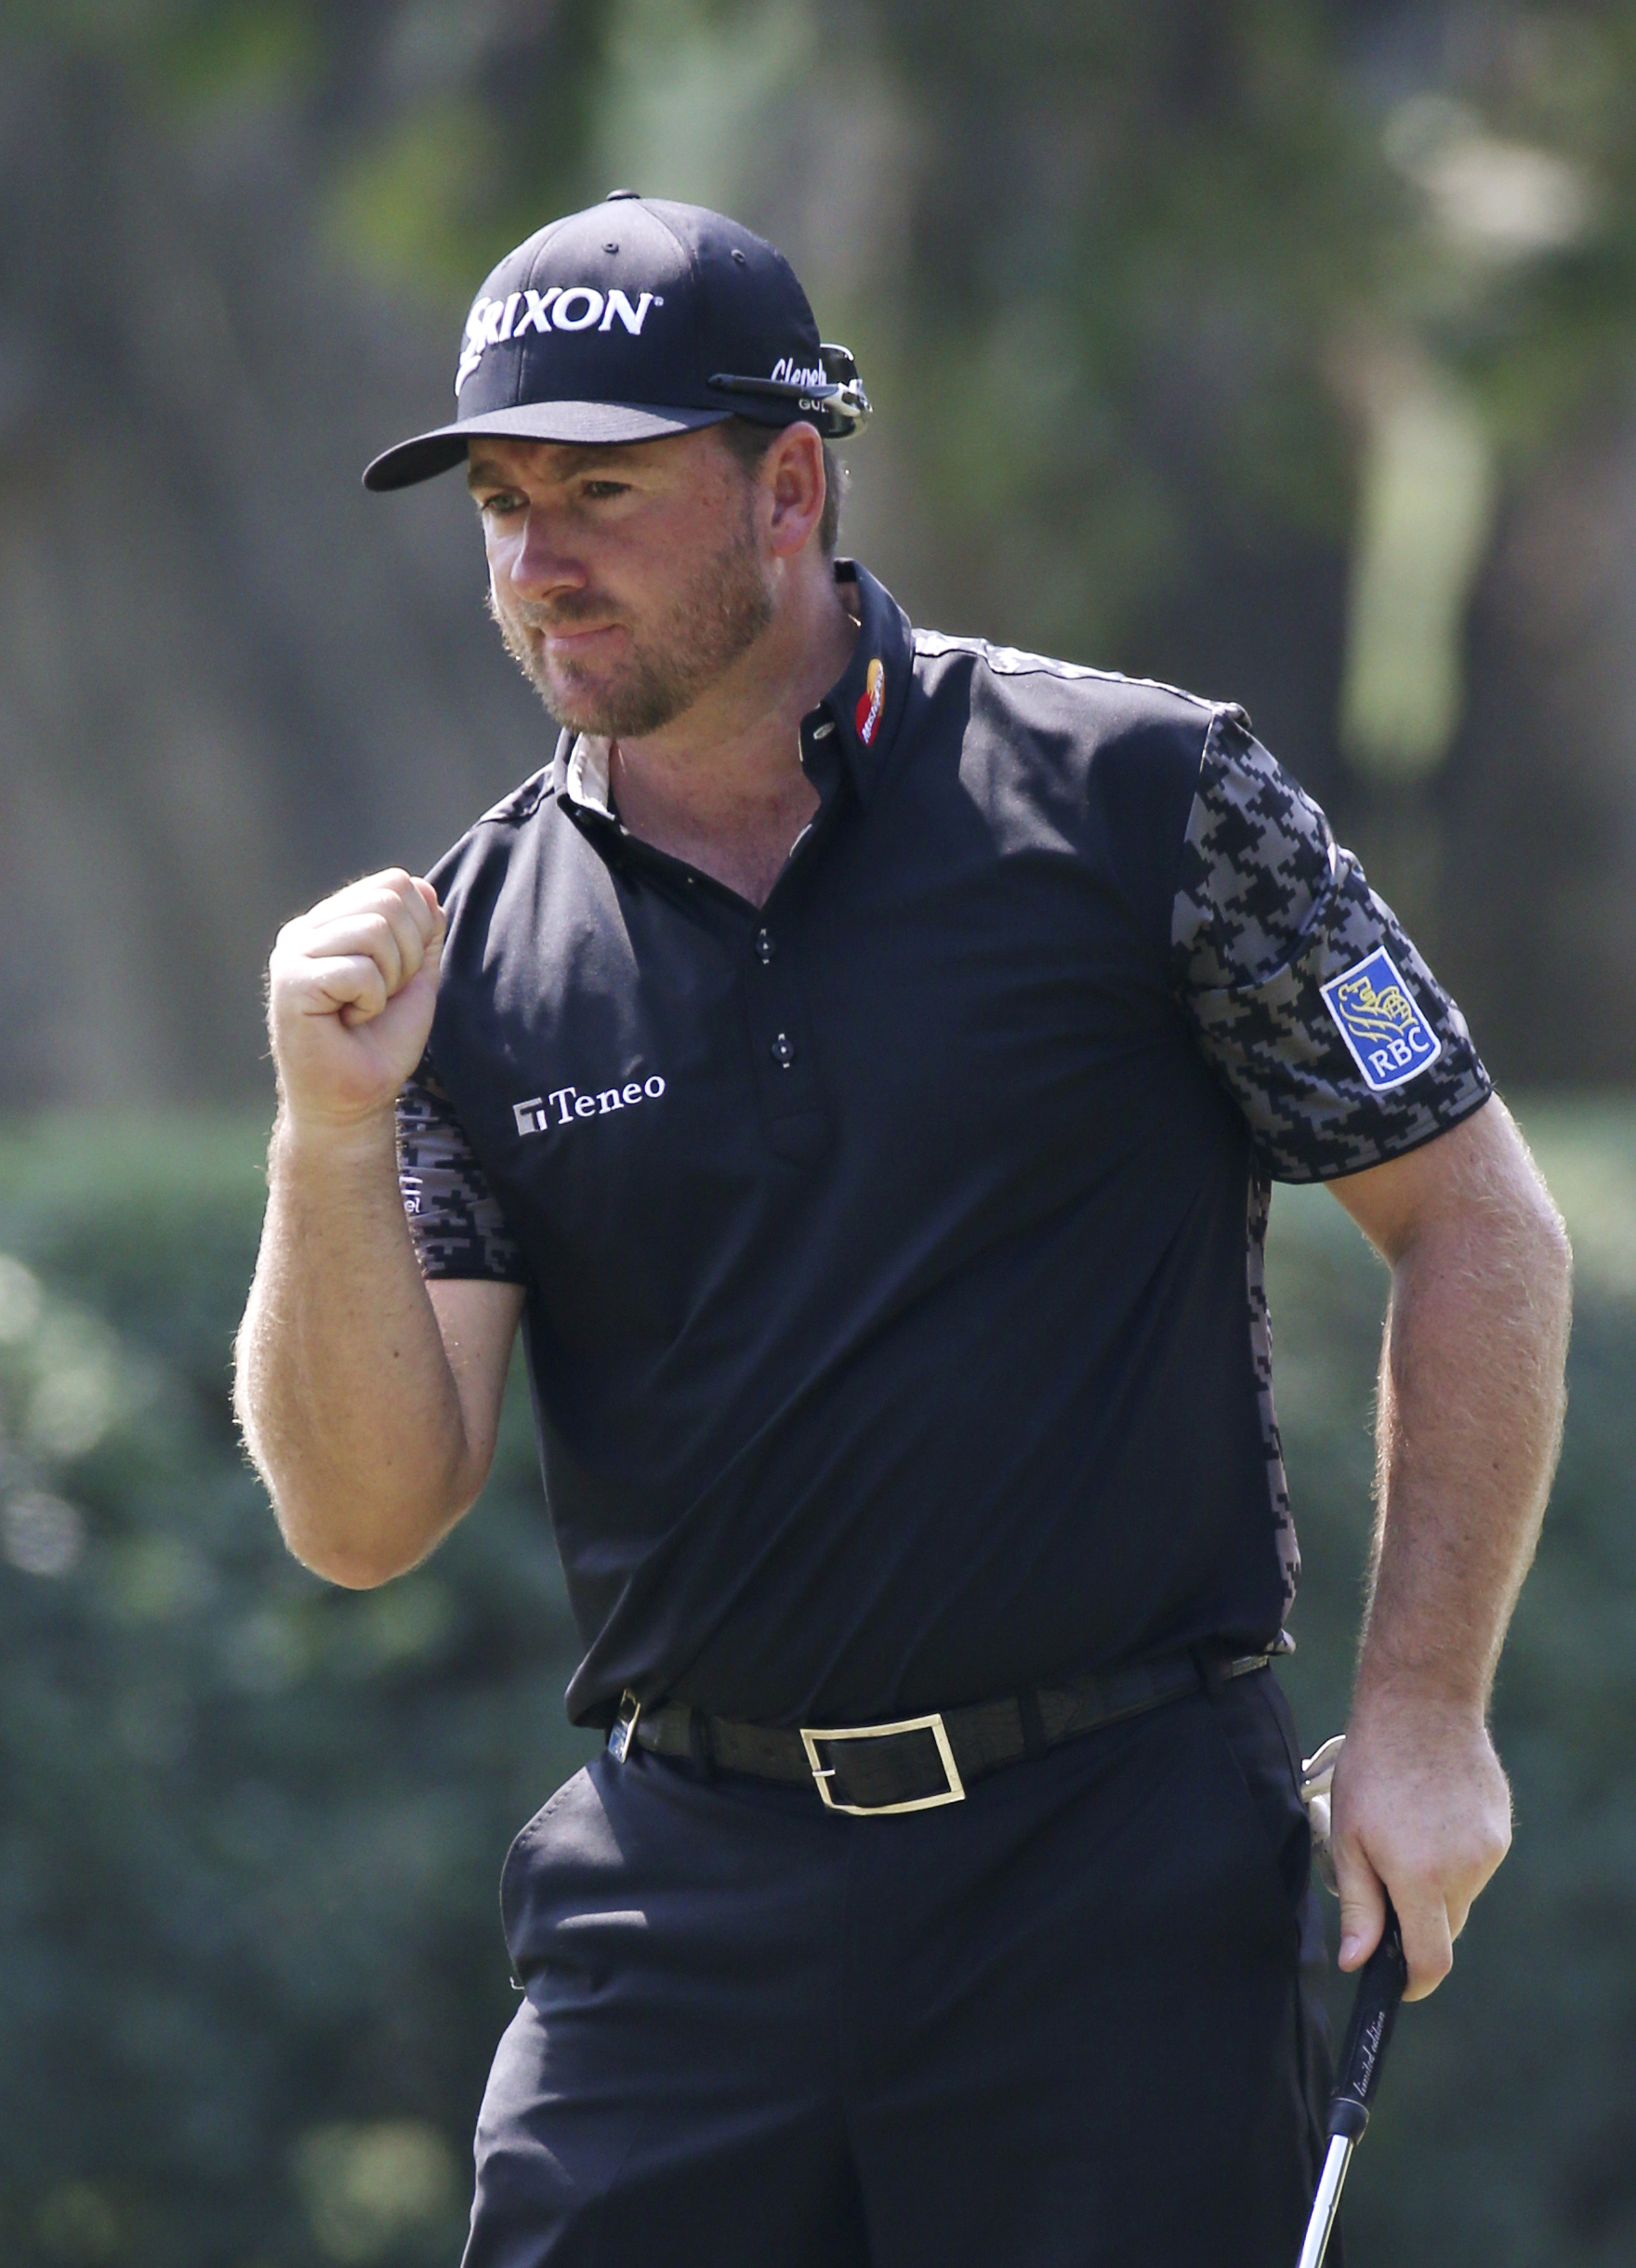 Graeme McDowell of Northern Ireland celebrates on the 10th hole during the round 2 match at the Hong Kong Open golf tournament, Friday, Oct. 23, 2015. (AP Photo/Kin Cheung)